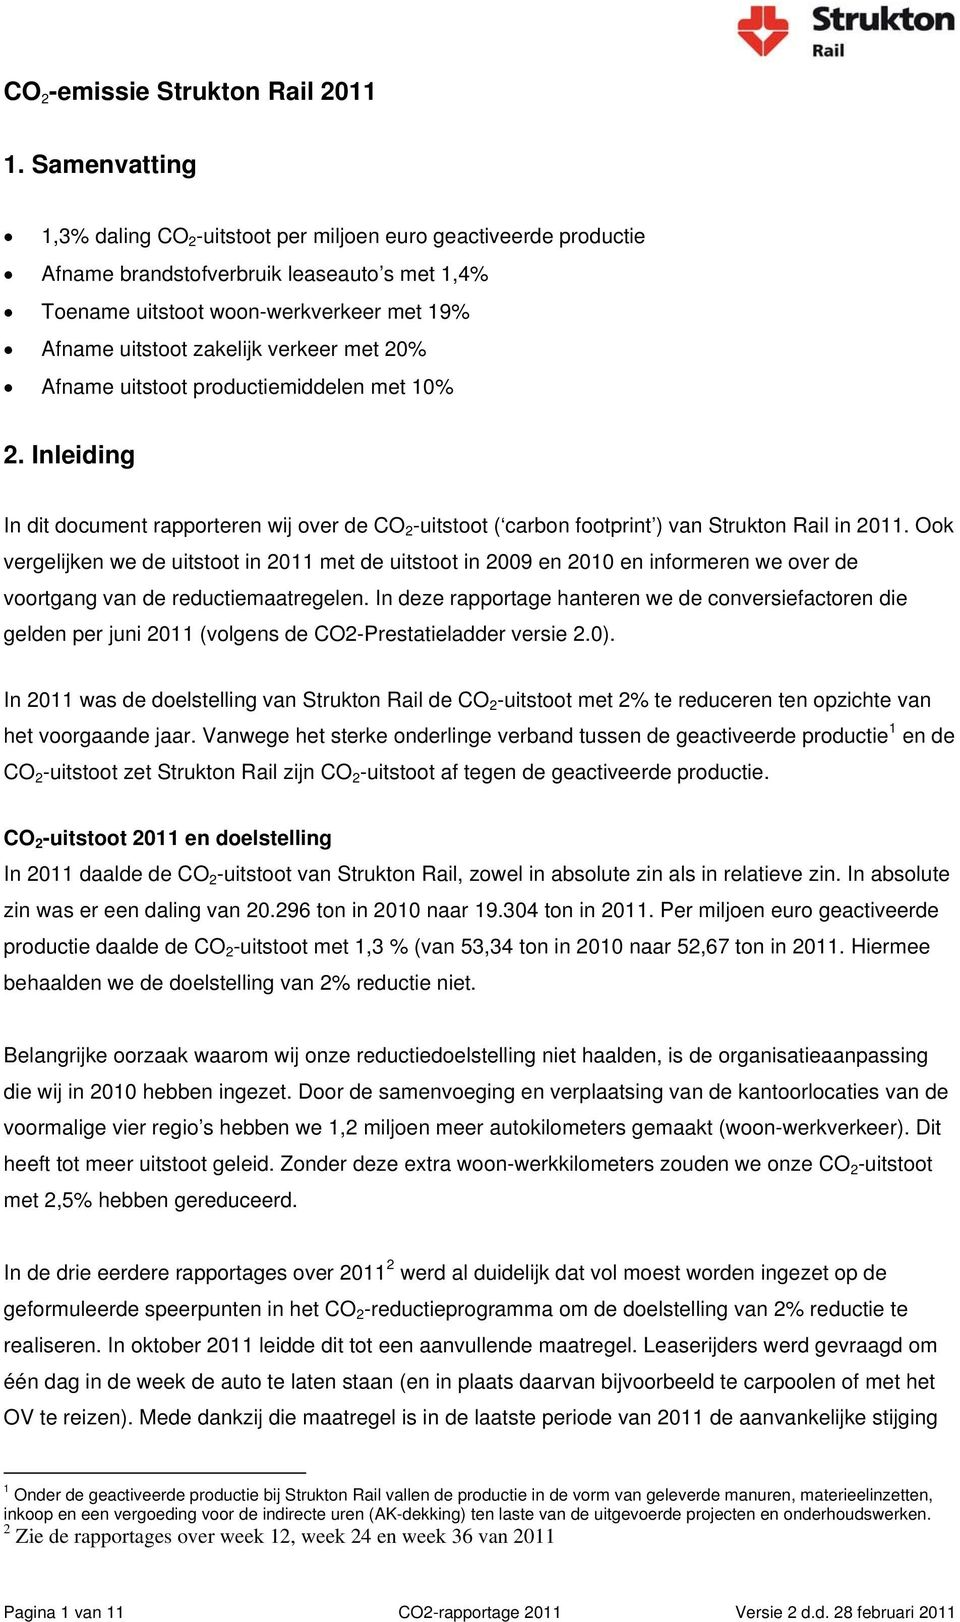 verkeer met 20% Afname uitstoot productiemiddelen met 10% 2. Inleiding In dit document rapporteren wij over de CO 2 -uitstoot ( carbon footprint ) van Strukton Rail in 2011.